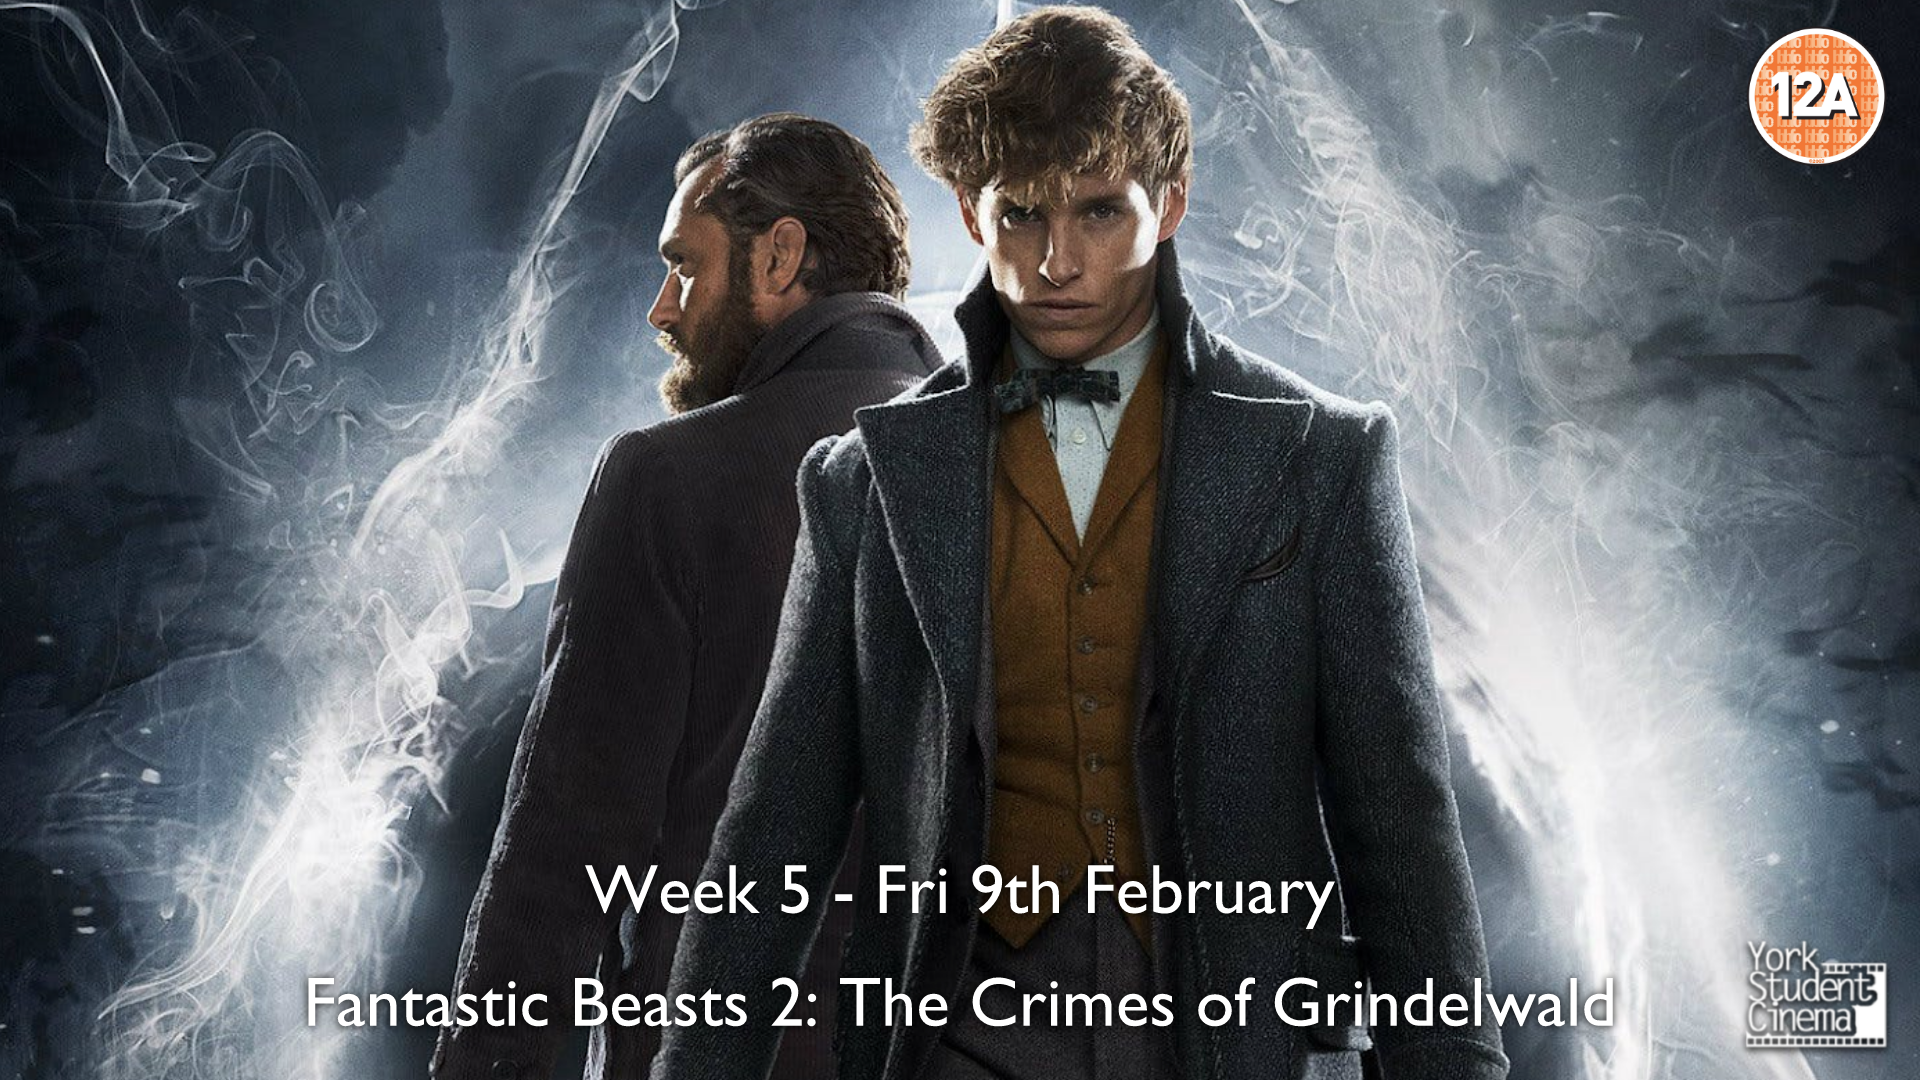 YSC Screening of Fantastic Beasts 2: The Crimes of Grindelwald